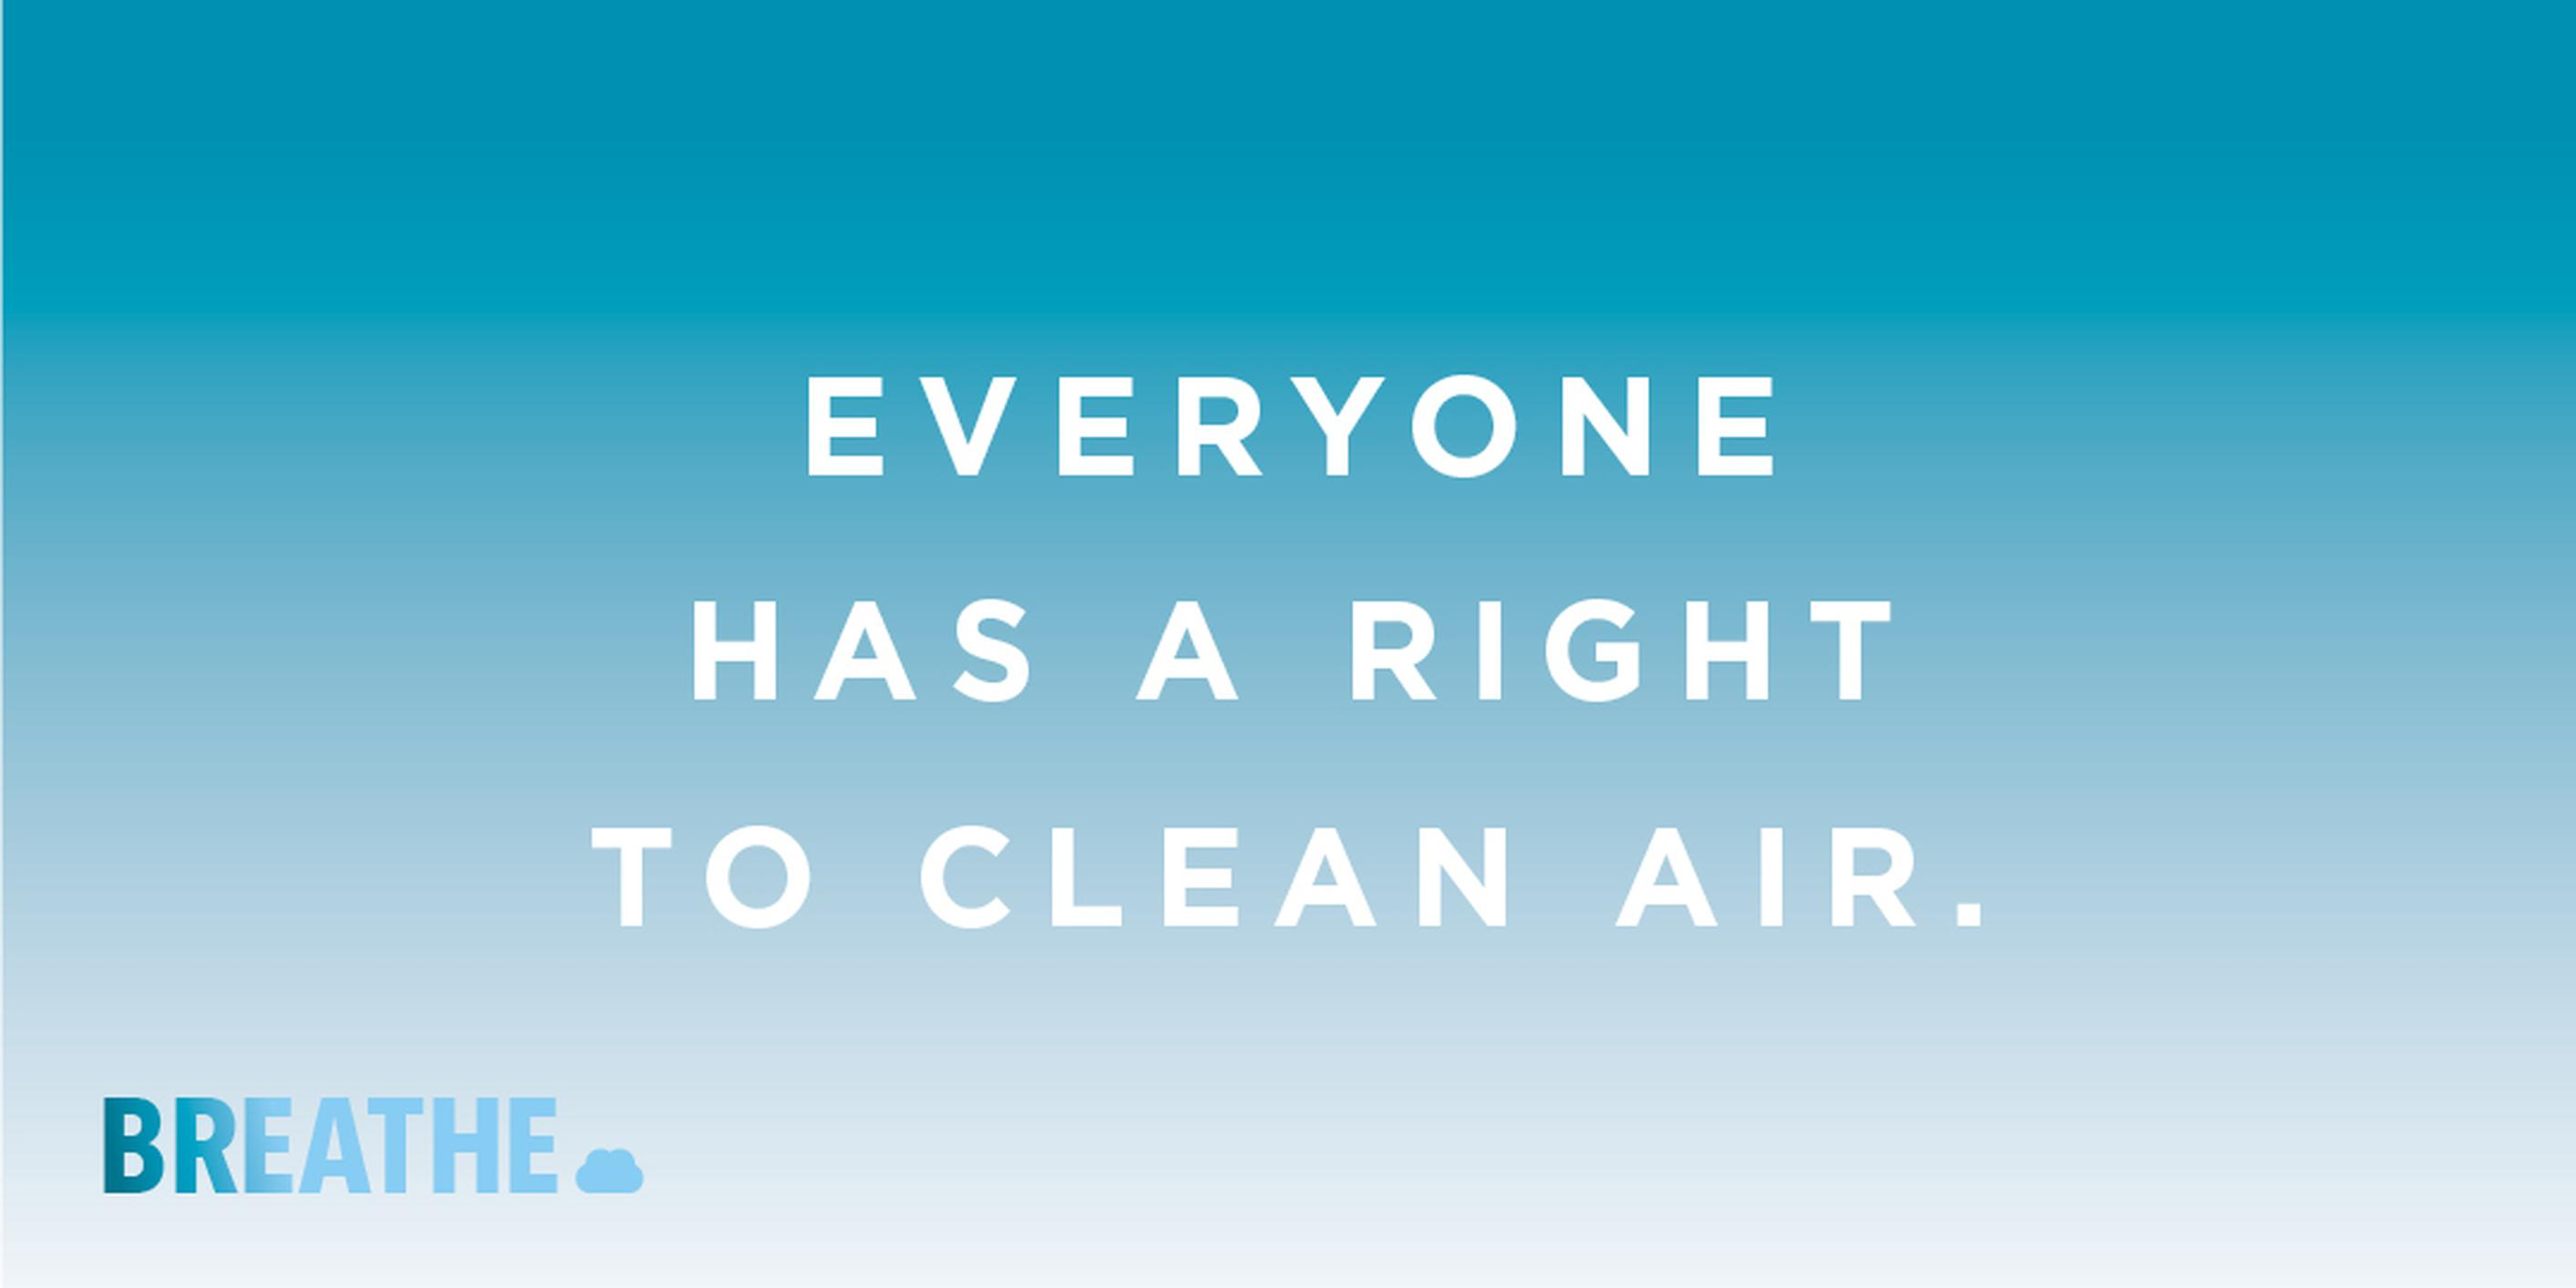 Newcastle City Council's air quality campaign